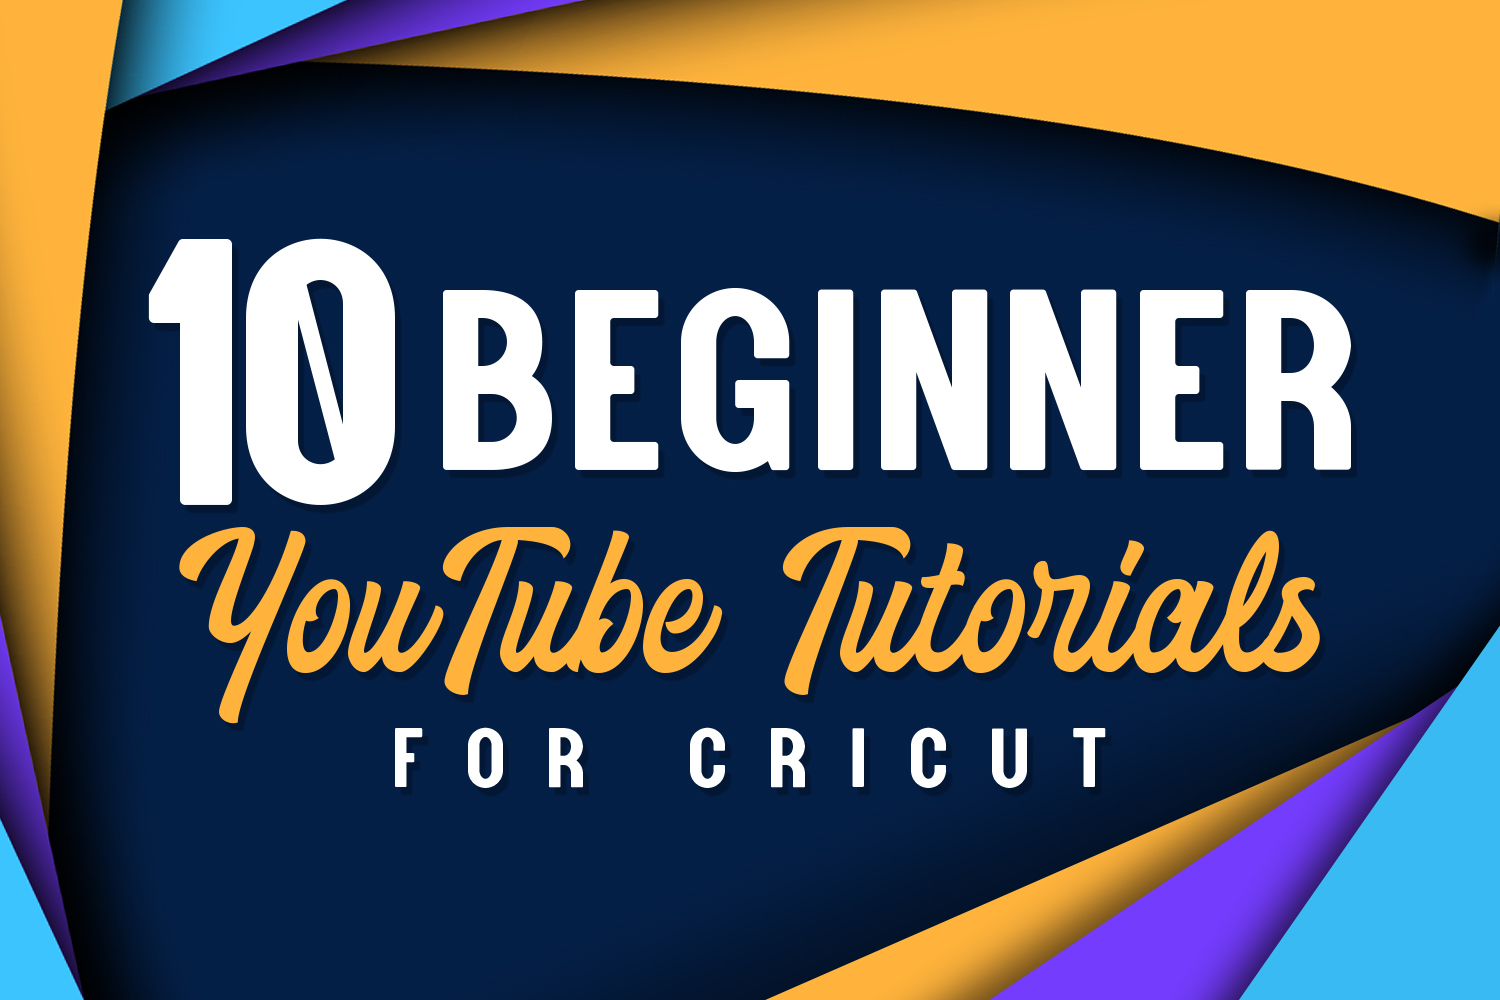 10 Beginner YouTube Tutorials for Cricut